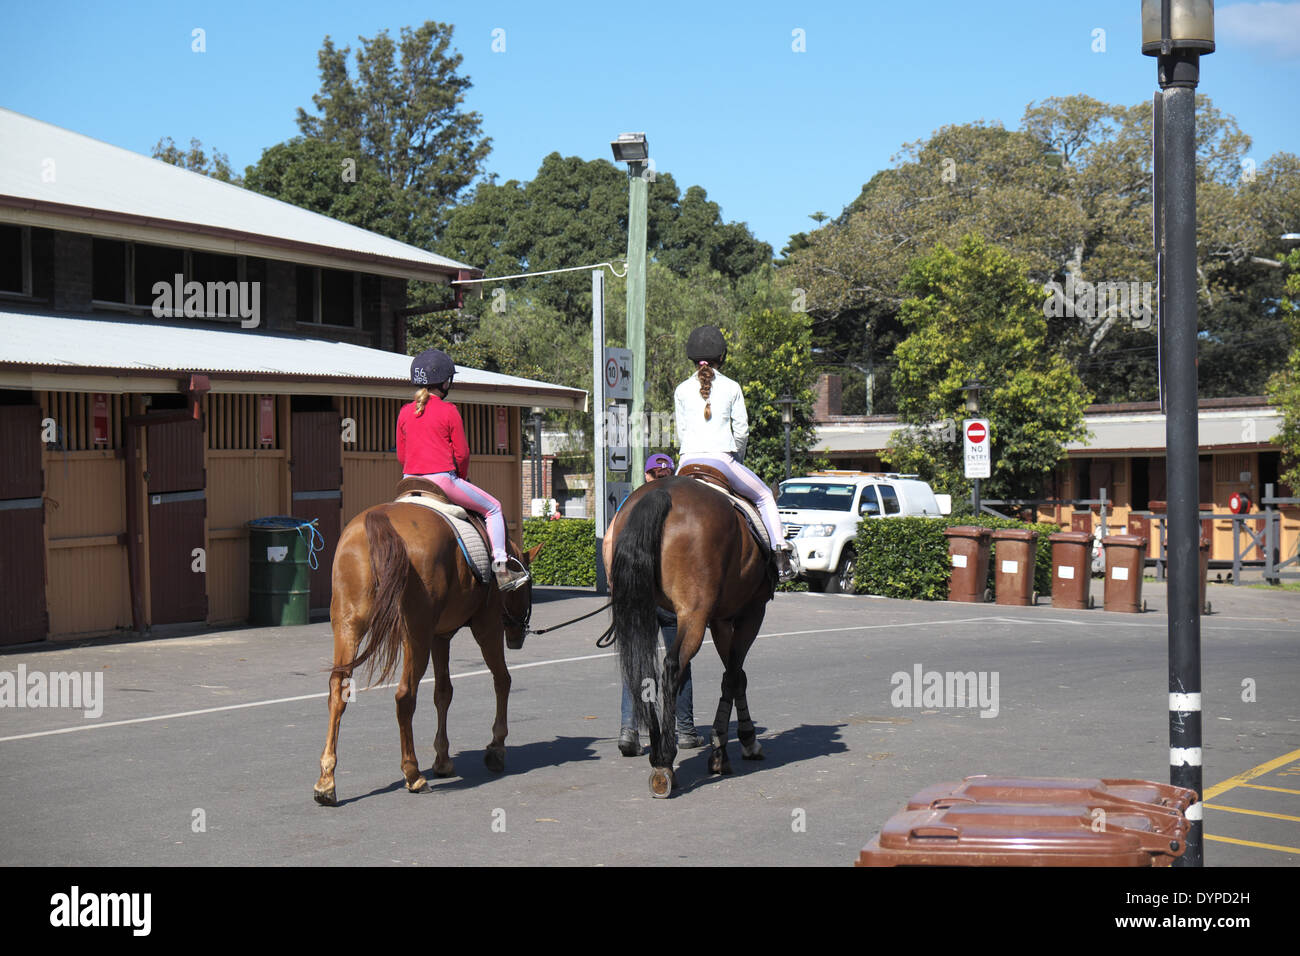 two children riding horses at centennial park equestrian centre and horse stables, eastern suburbs,sydney - Stock Image